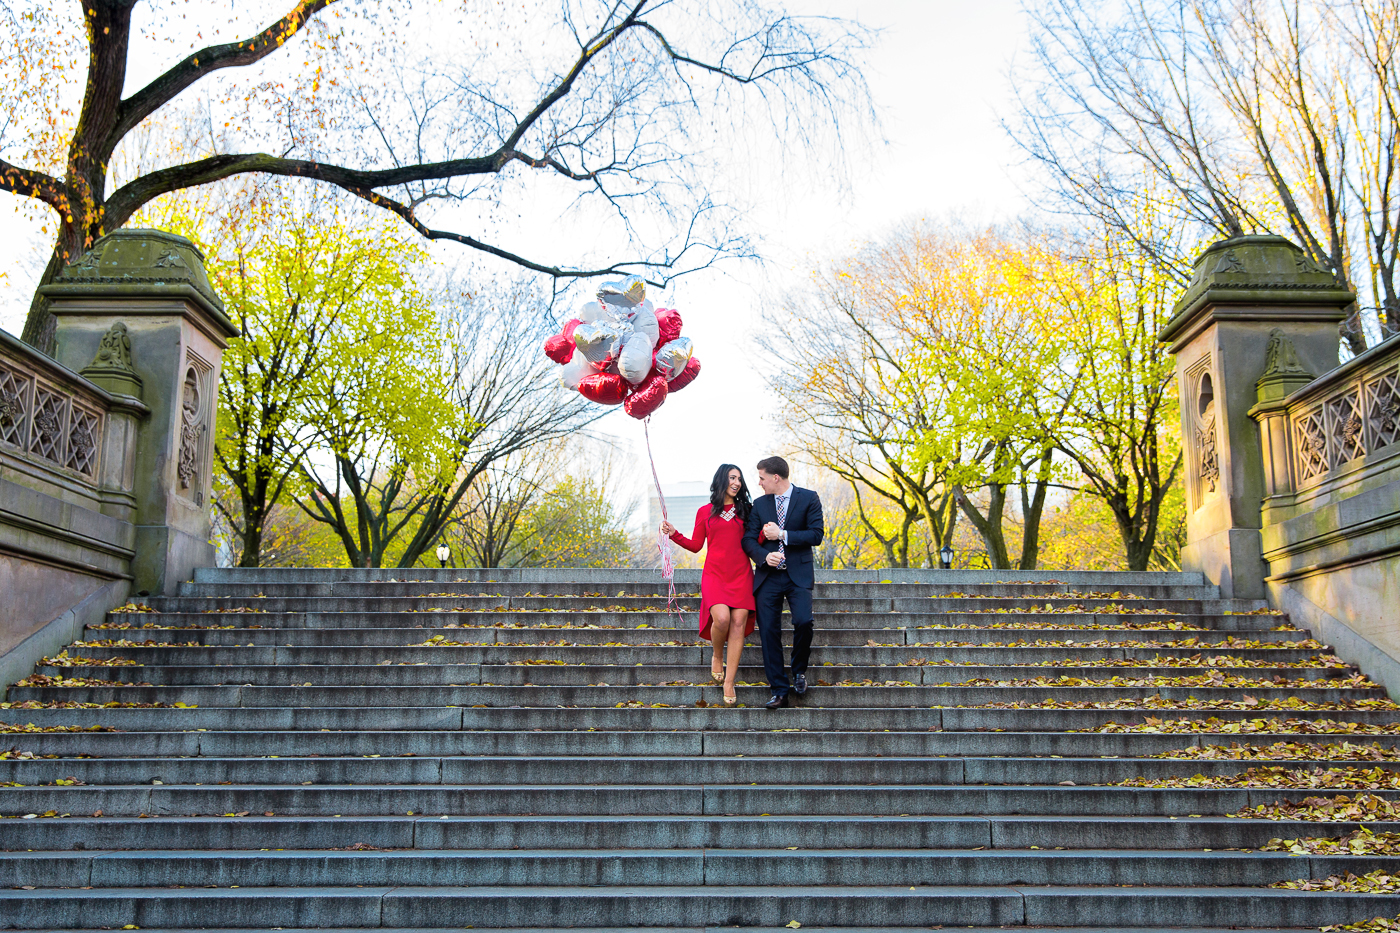 J&D_Engagement Photography_New York-001